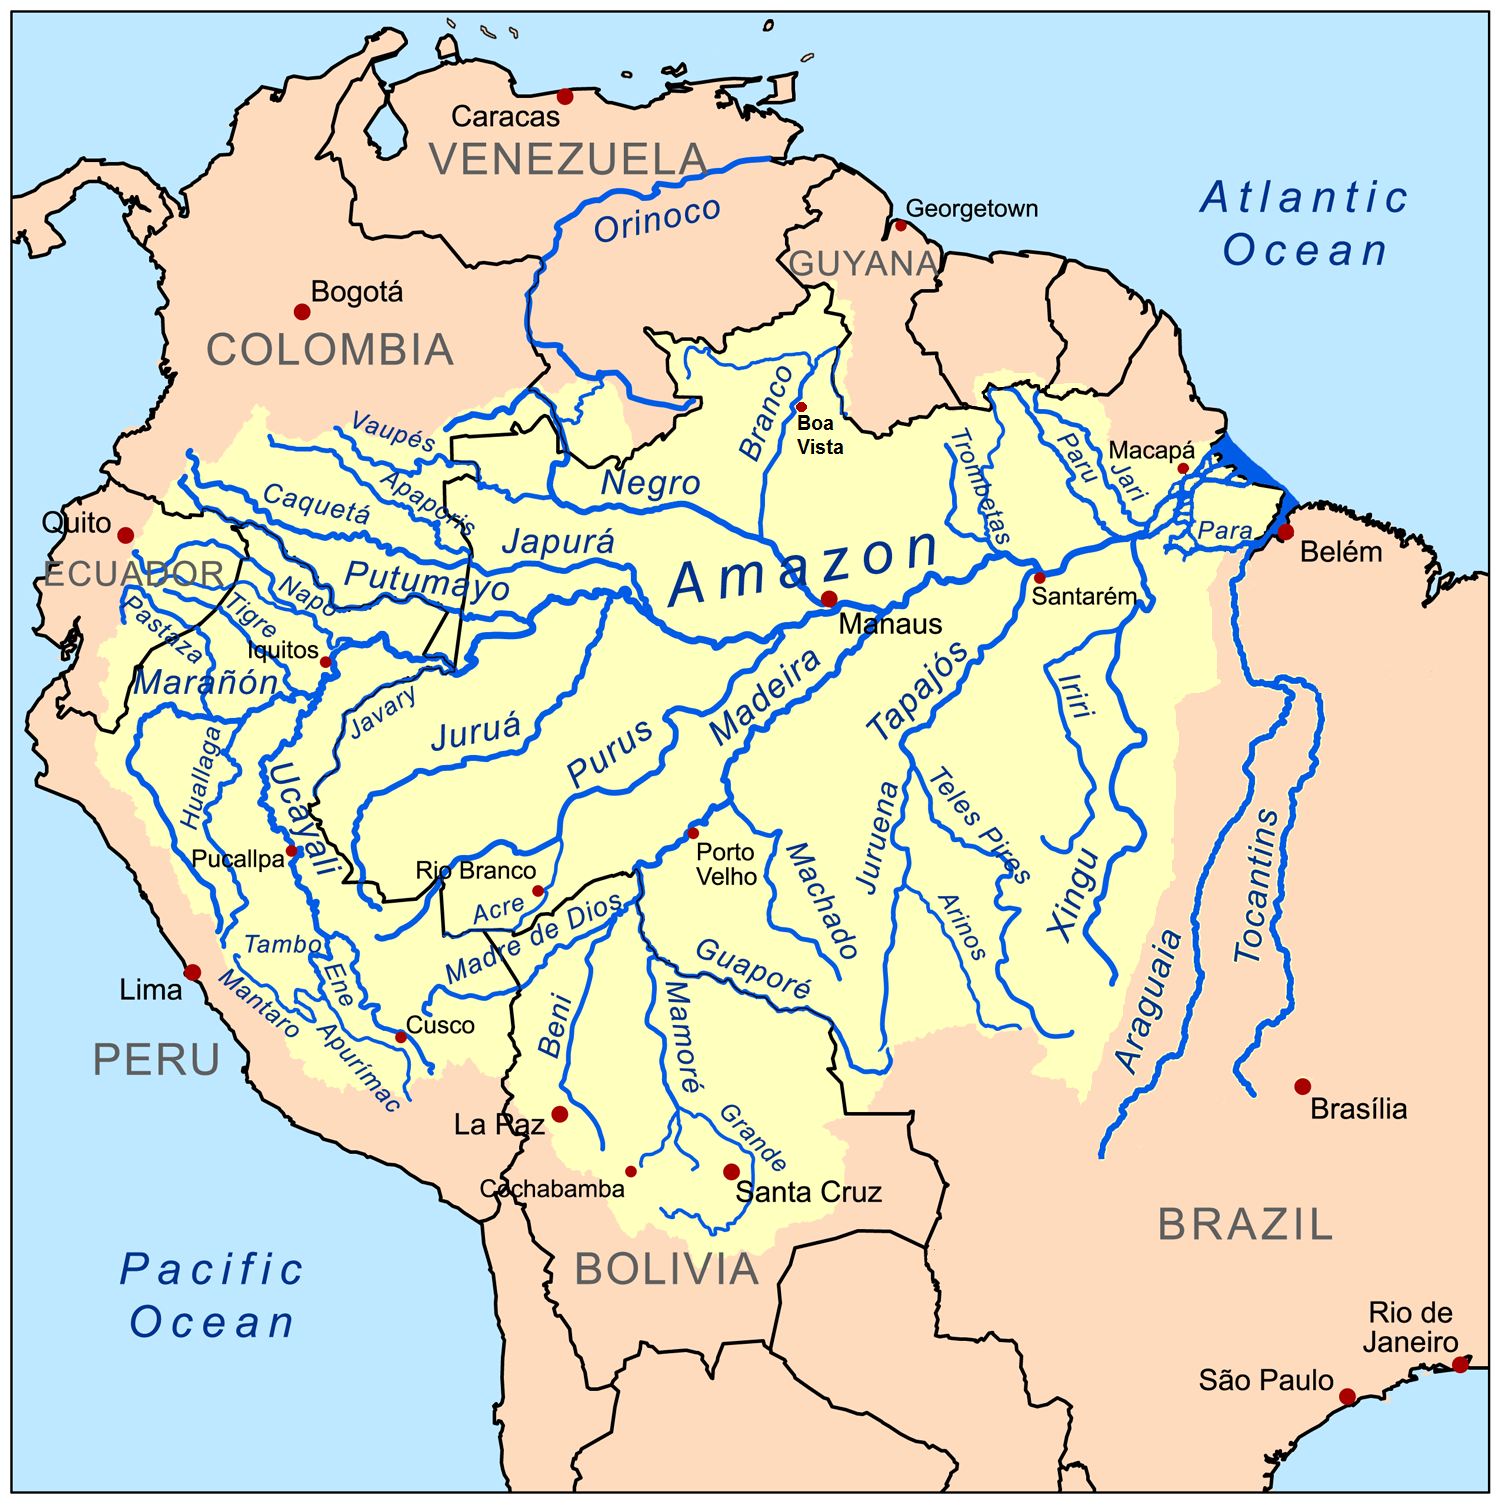 Pin By Nidia Rodriguez On Reference Earth Map Amazon River Bolivia Travel Amazon Rainforest